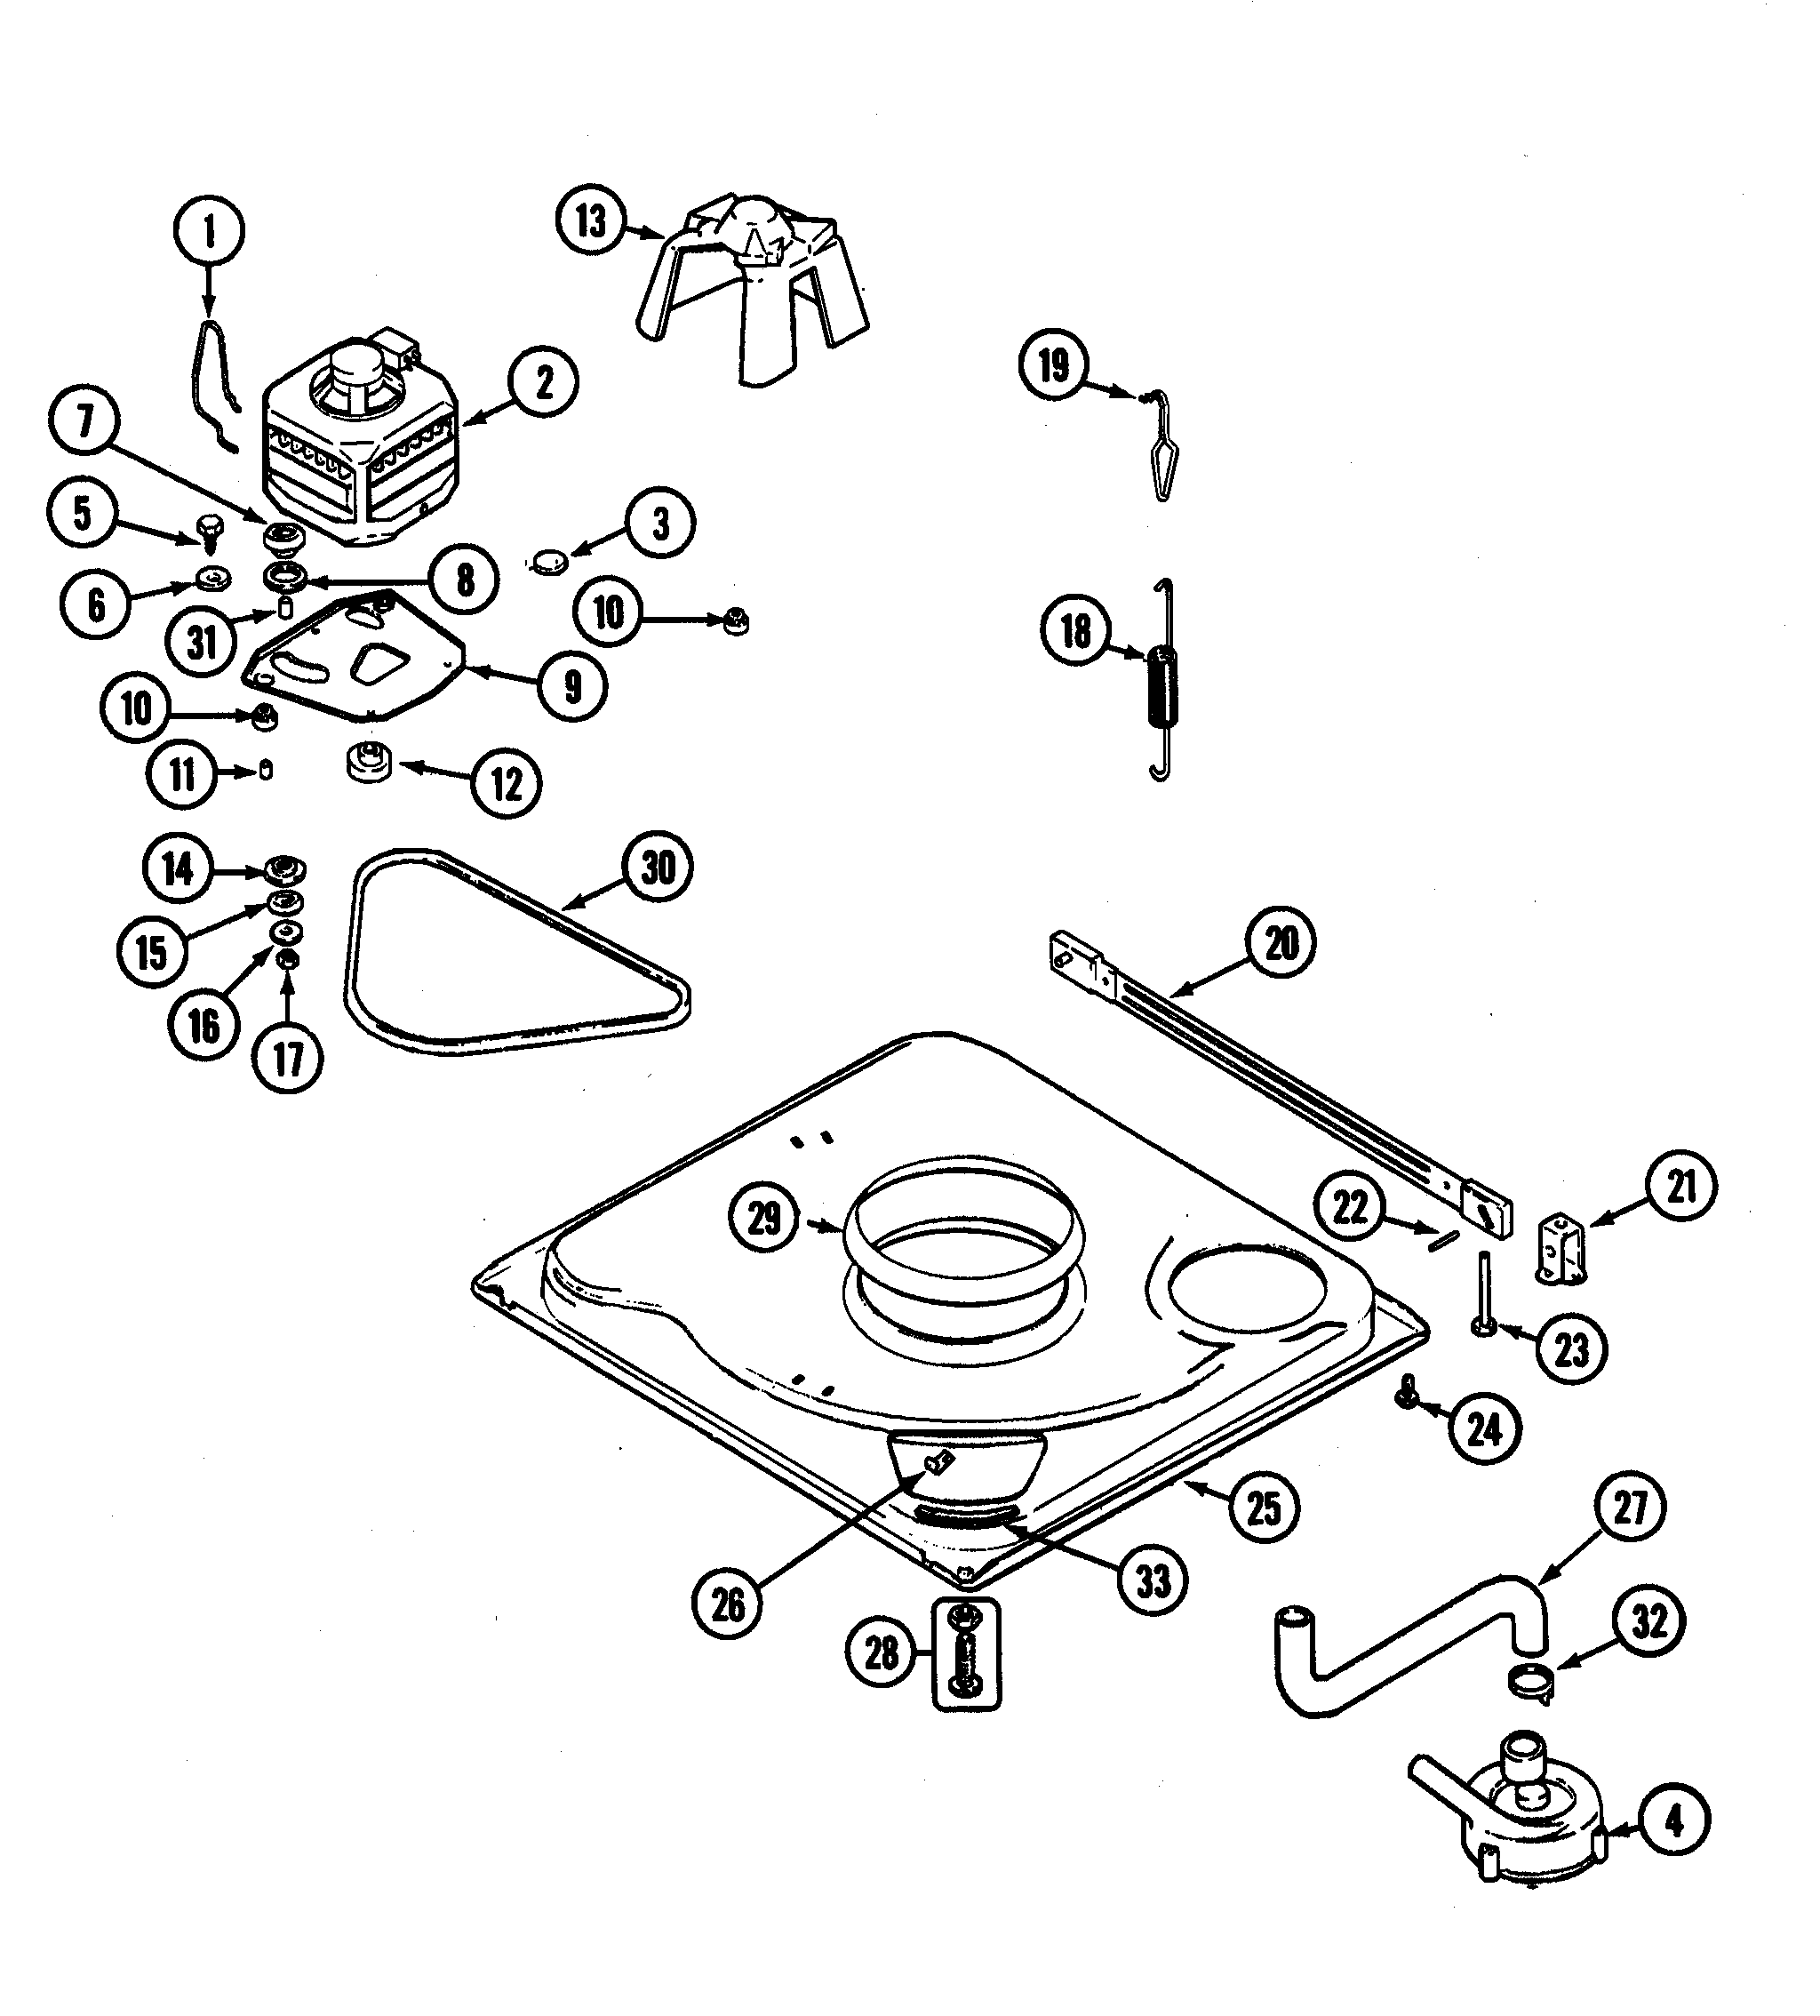 LNC6760B71base maytag washer motor plate 35 2021 for admiral washer motor admiral dryer wiring diagram at readyjetset.co